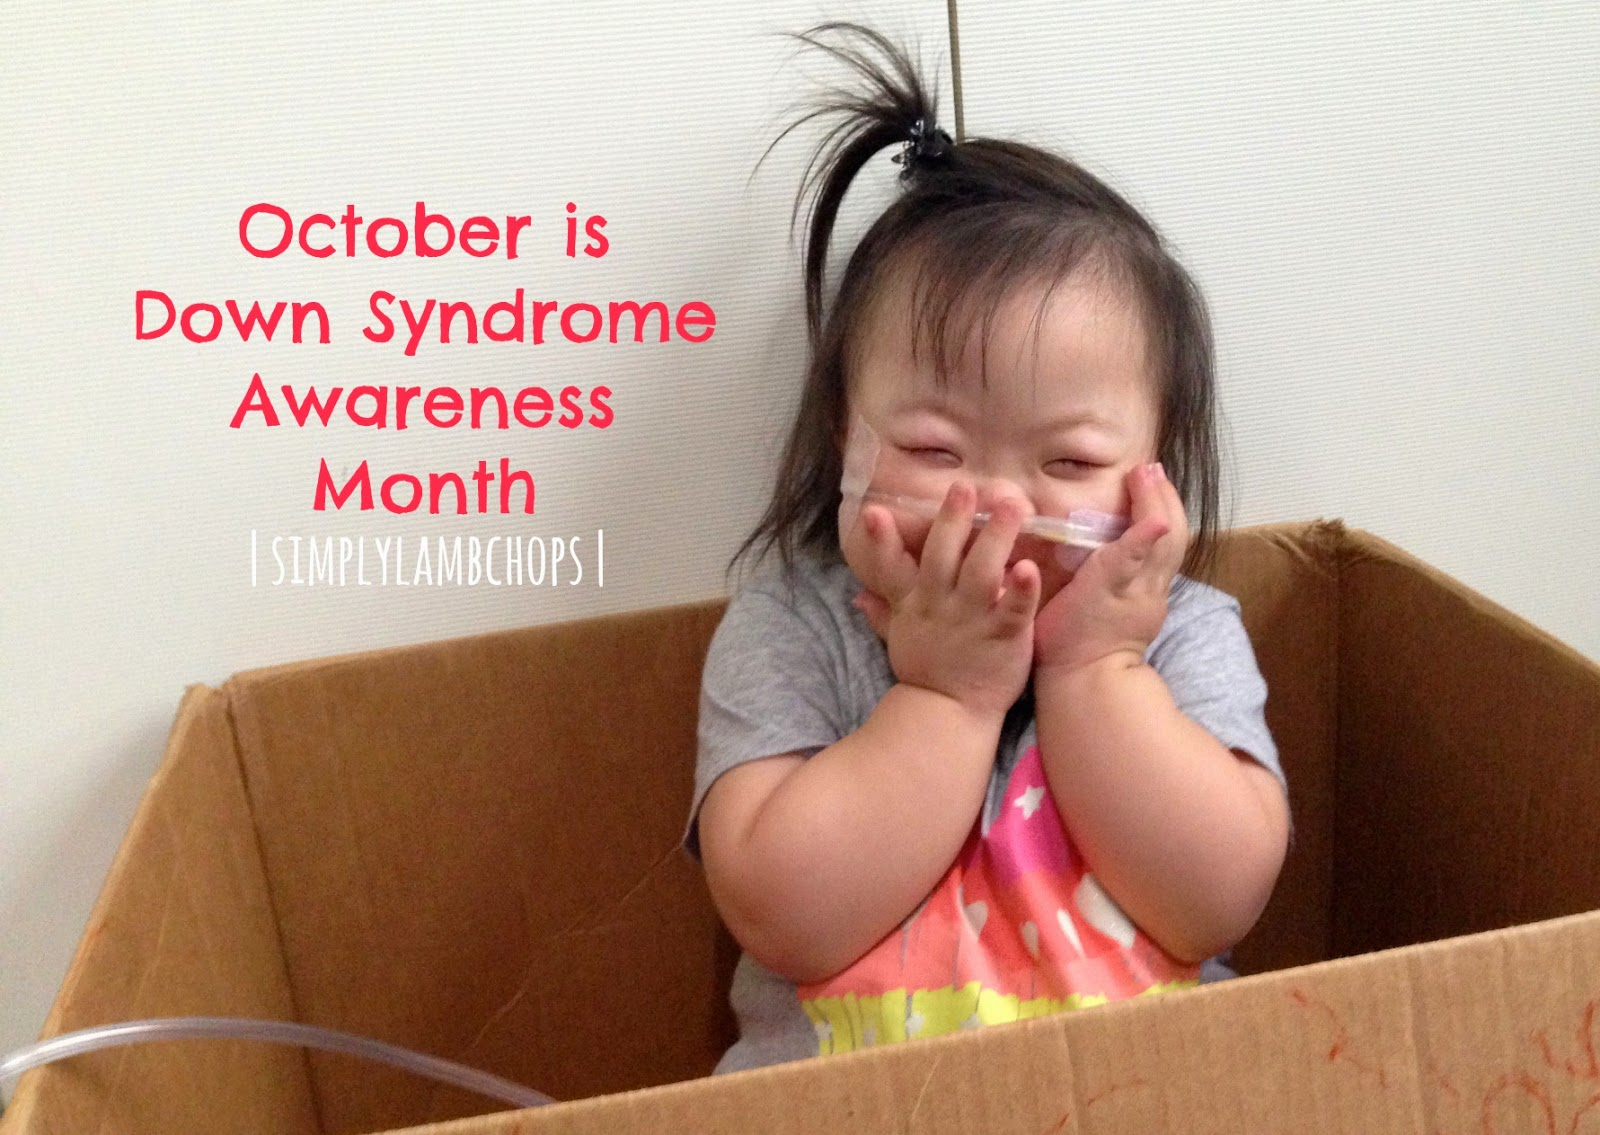 Down Syndrome Awareness Month by Simply Lambchops